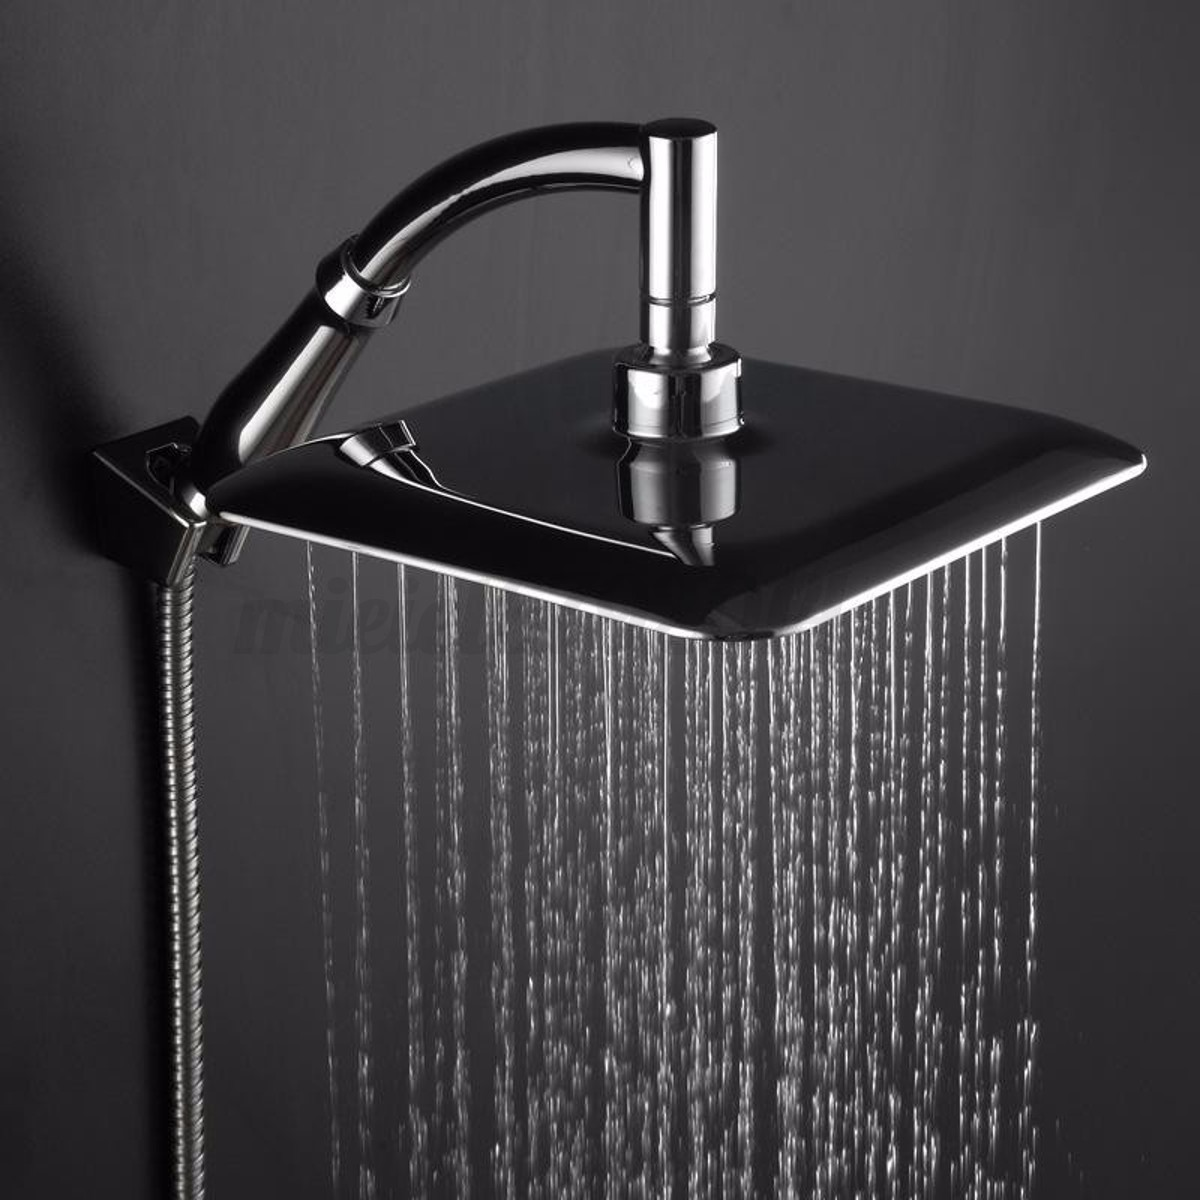 chrome abs rainfall shower head faucet extension with shower arm and hose kit ebay. Black Bedroom Furniture Sets. Home Design Ideas